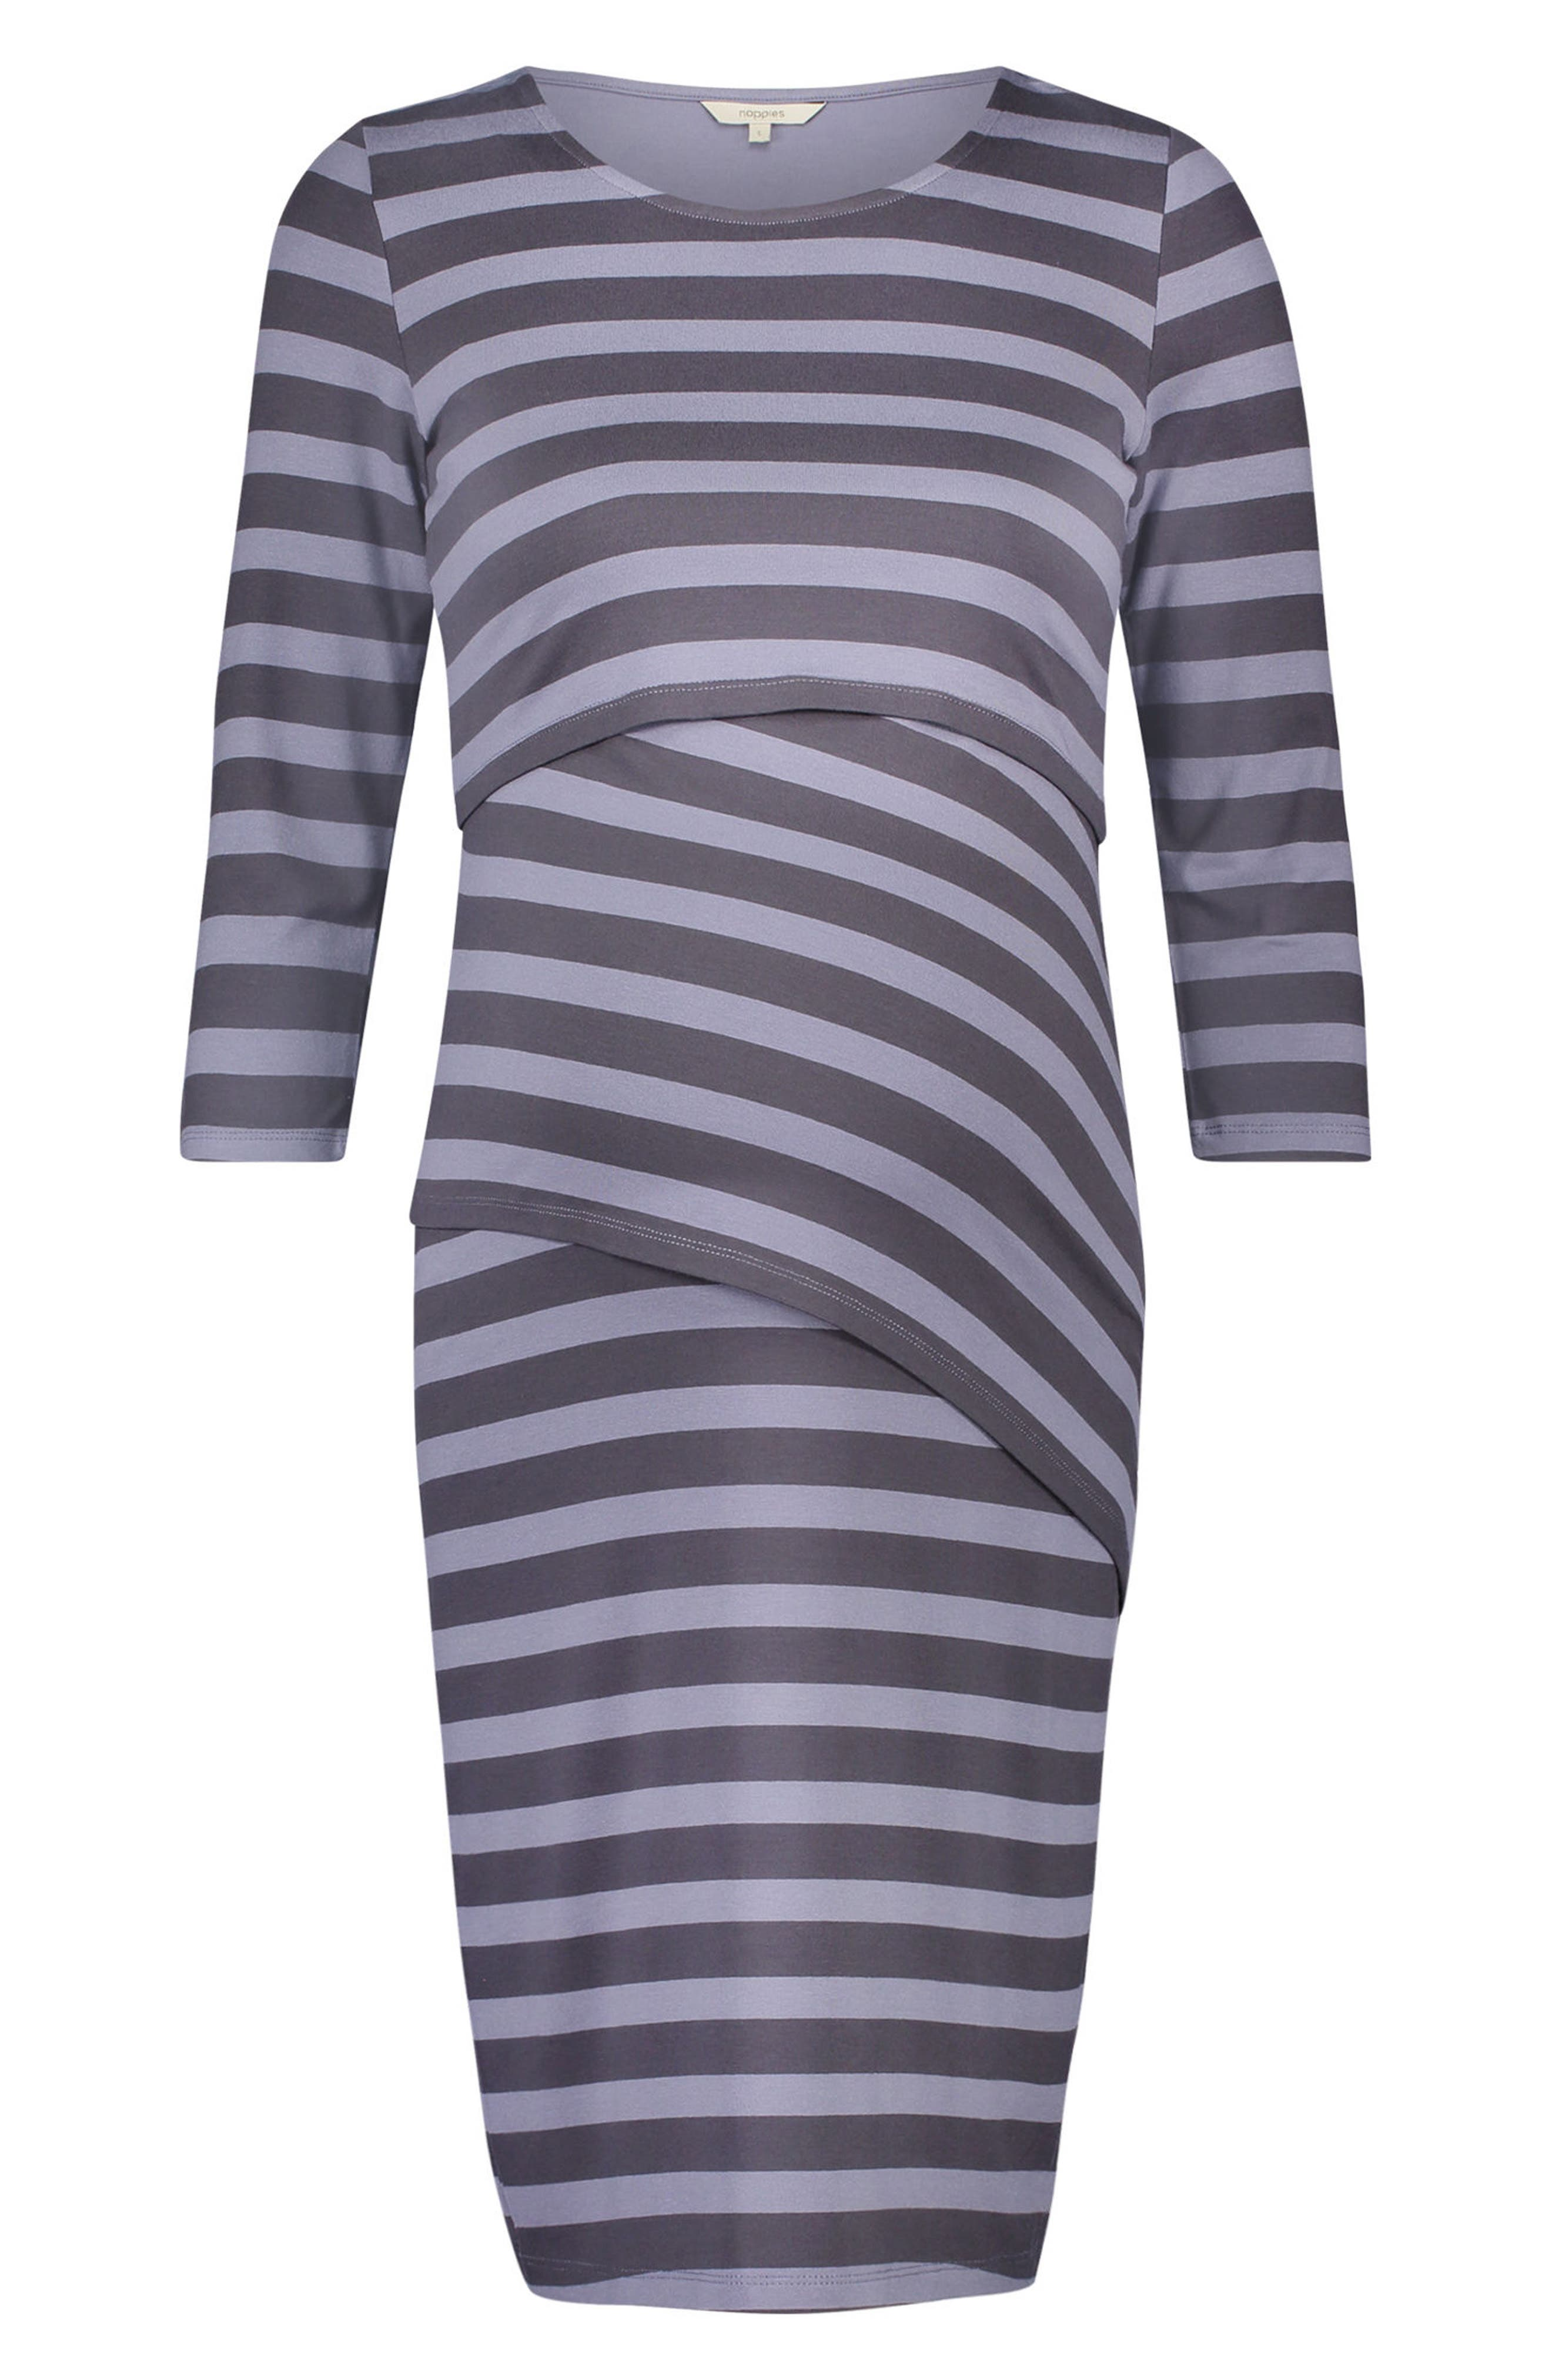 Aaike Maternity/Nursing Sheath Dress,                             Alternate thumbnail 4, color,                             Blue Strip